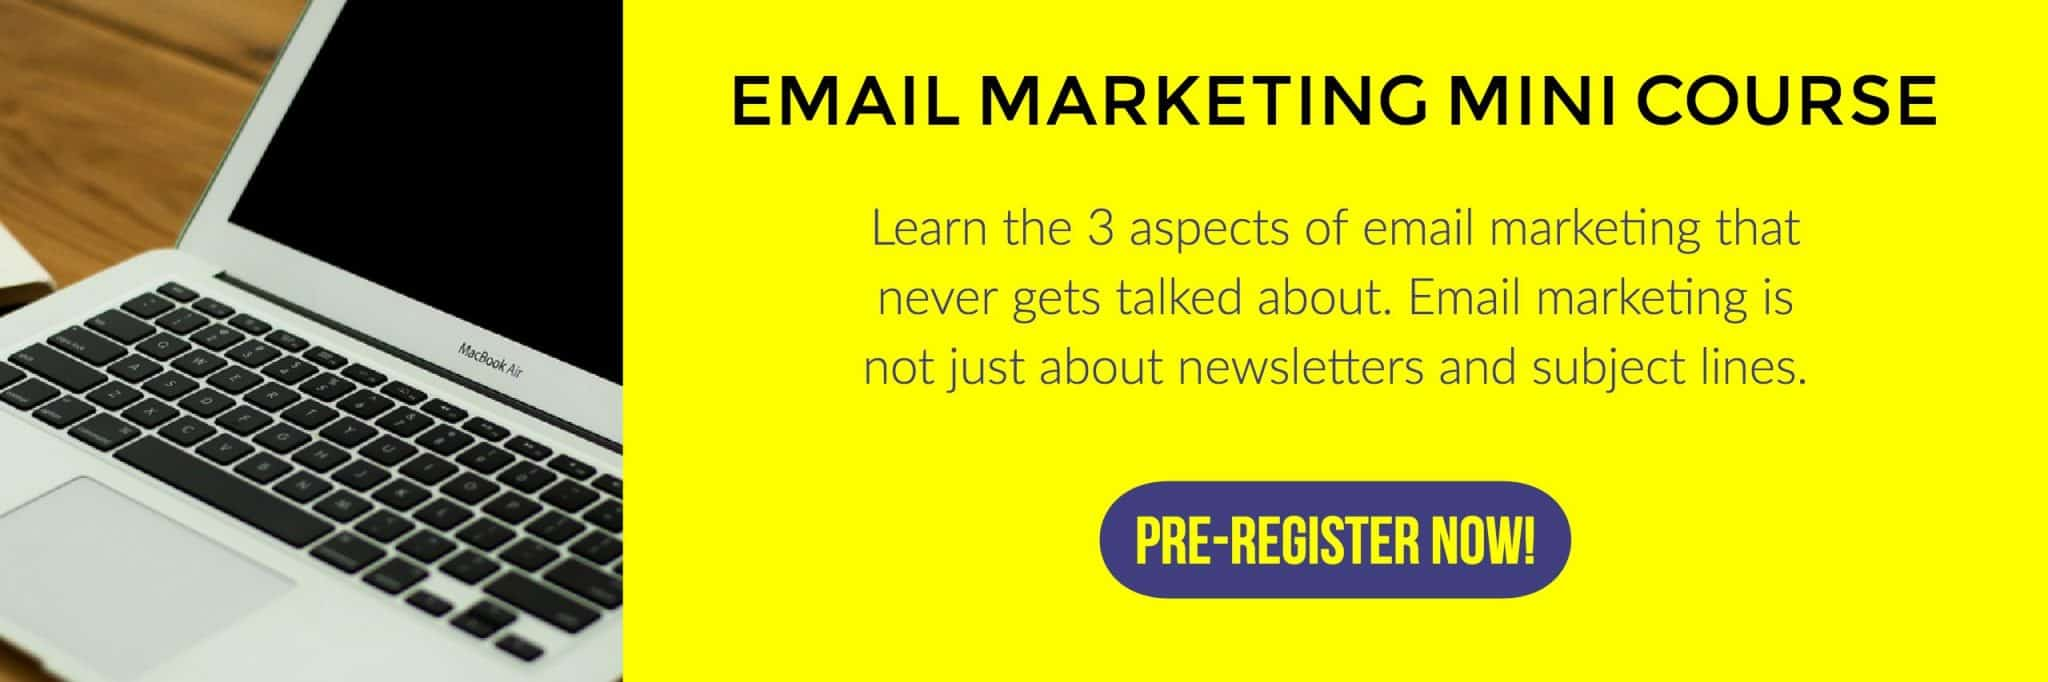 Pre-register to email marketing mini course